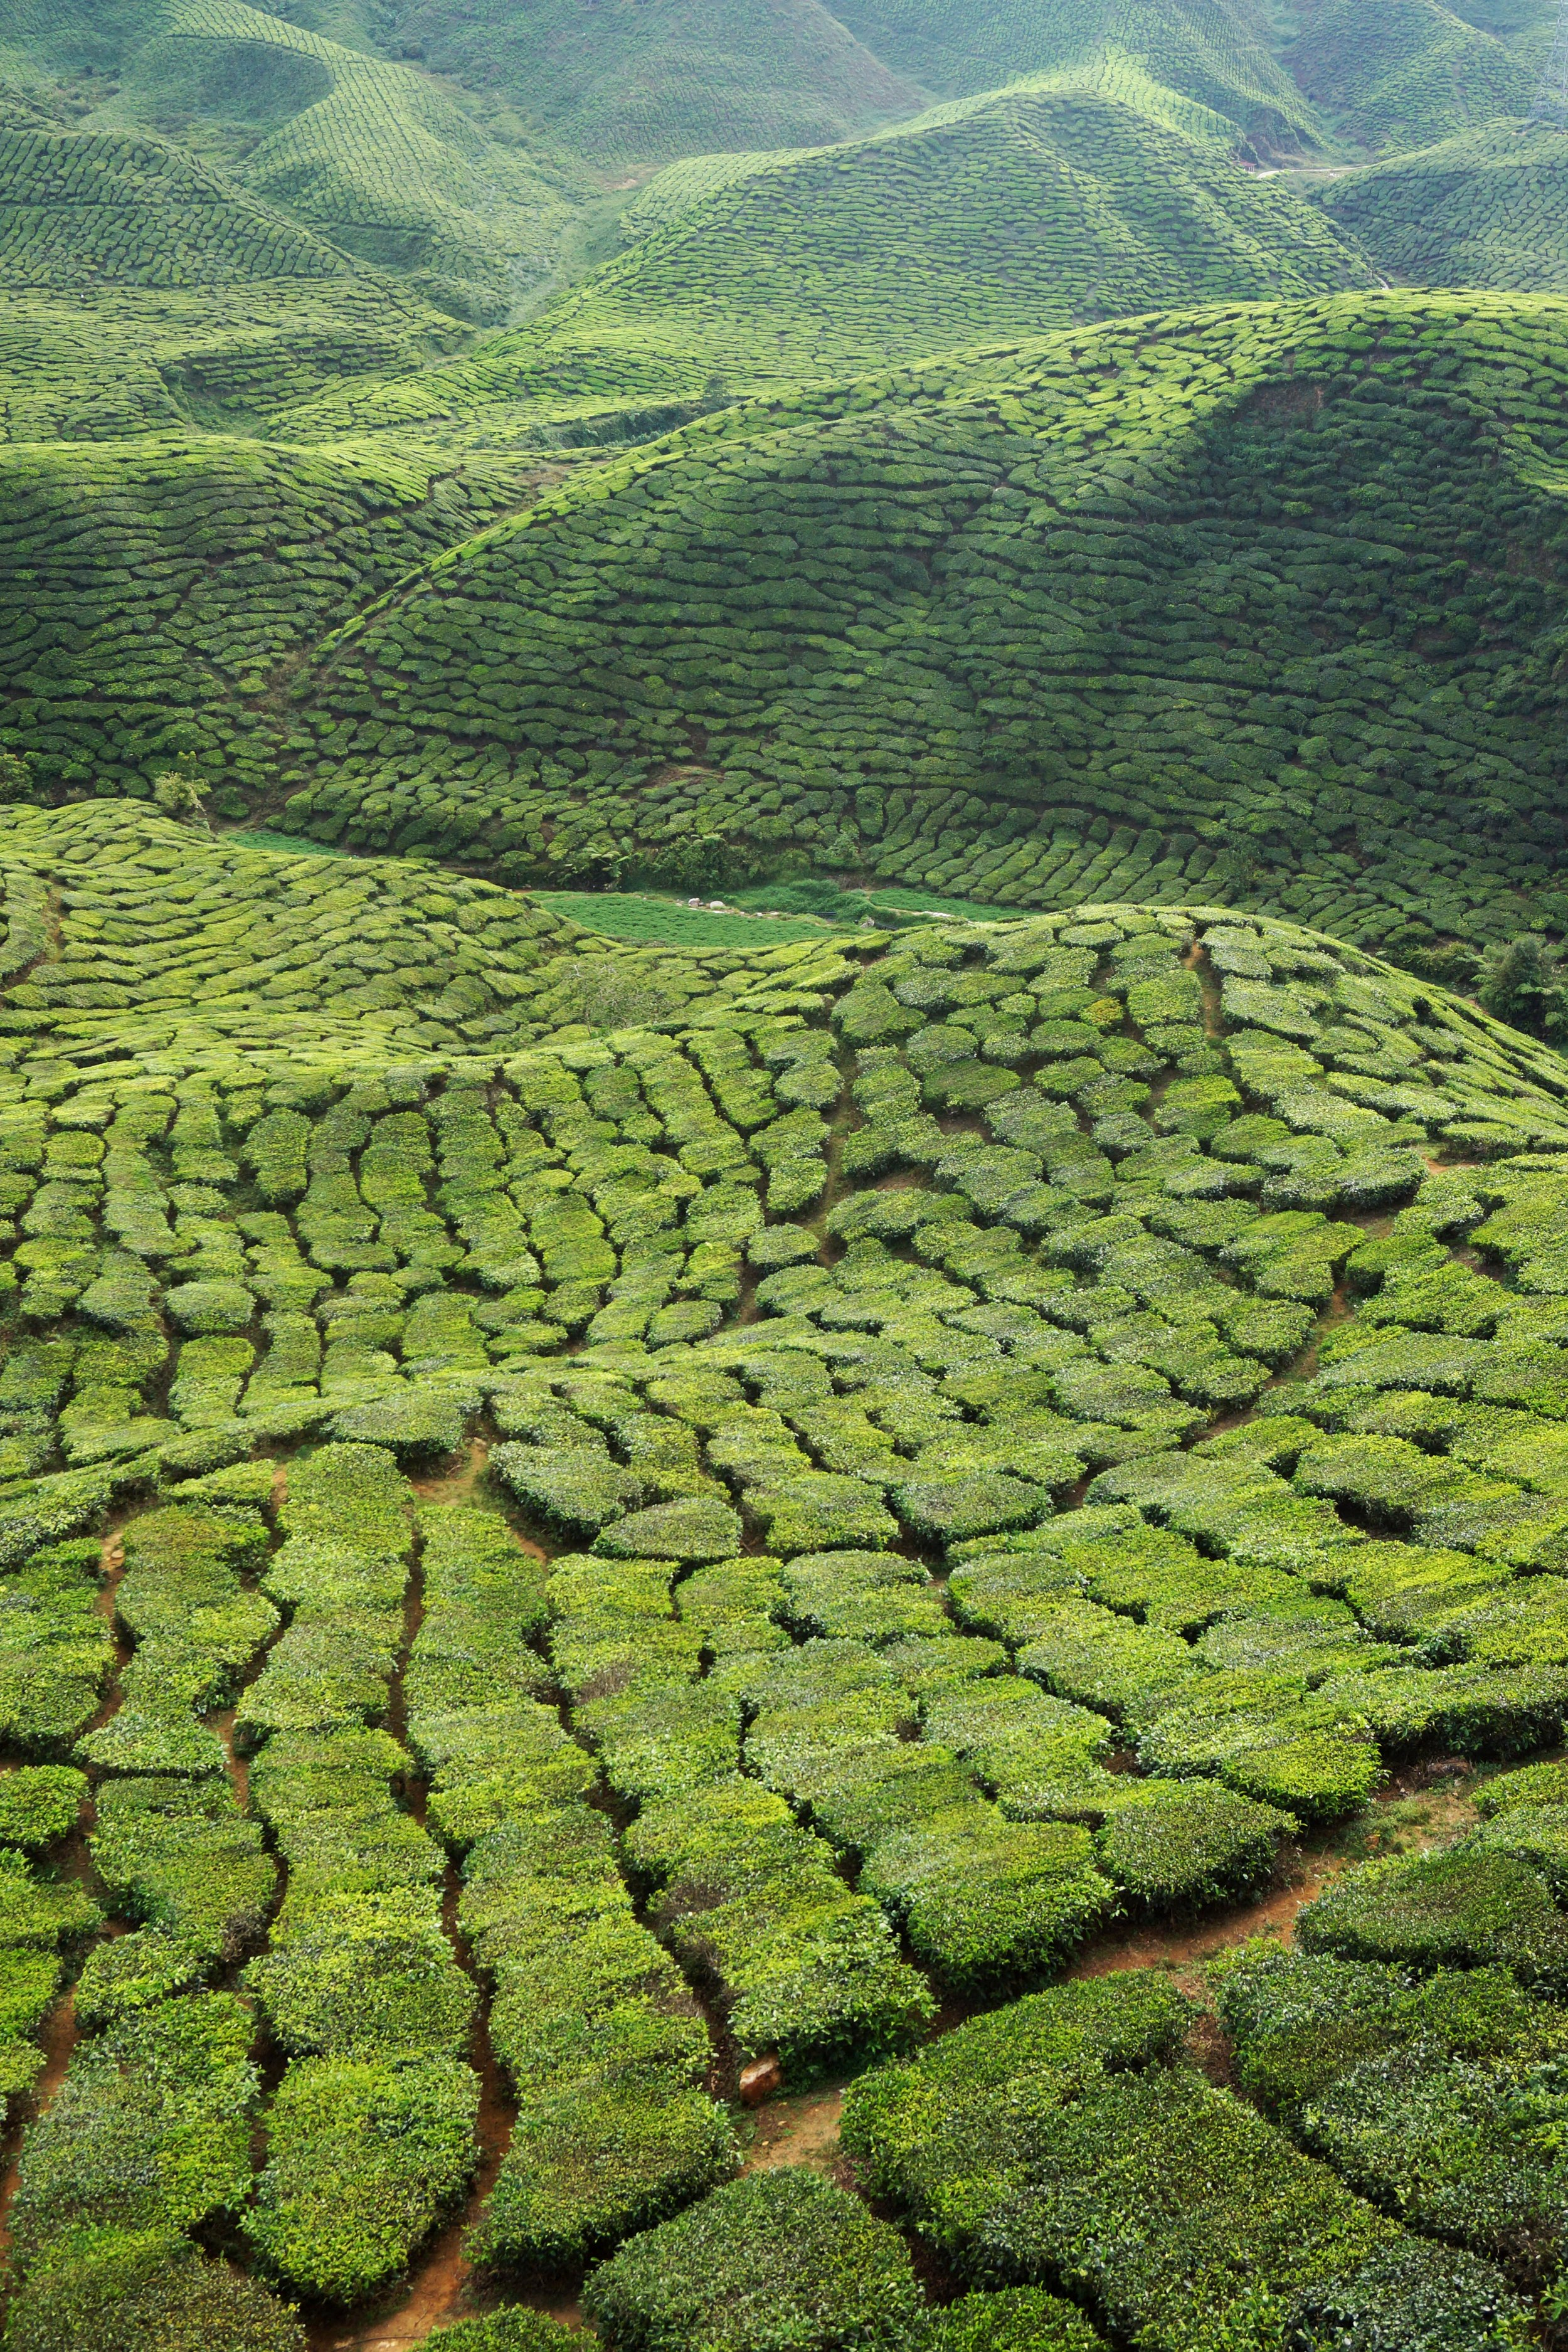 The otherworldly landscapes of the Bahrat Tea Fields, in Malaysia's Cameron Highlands.